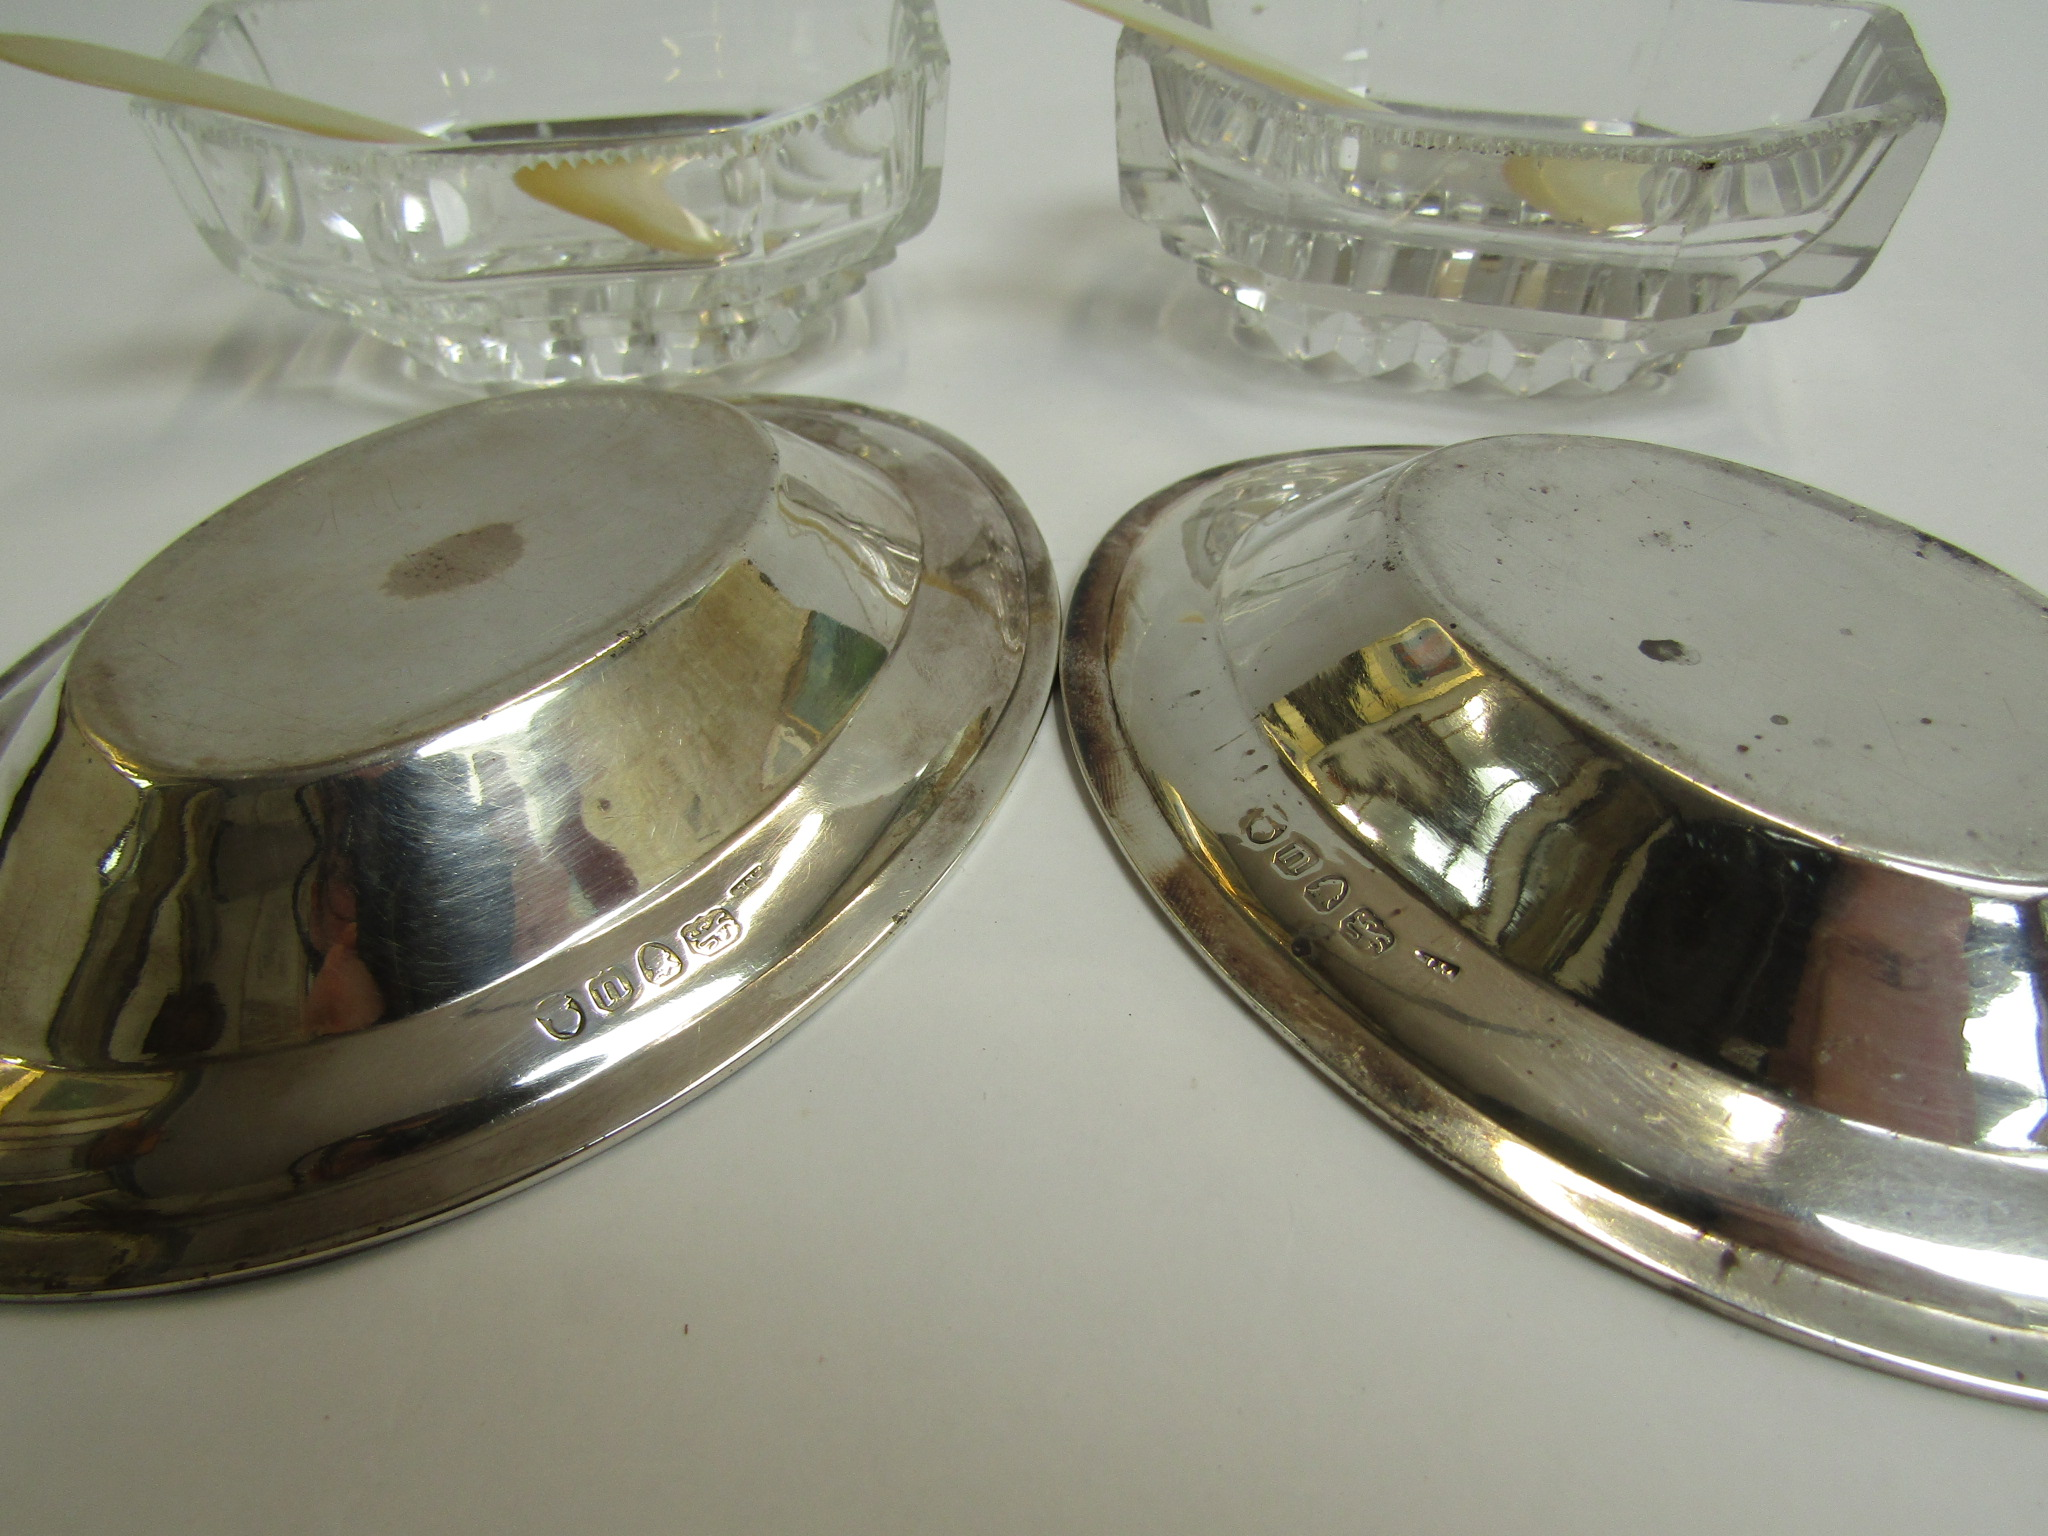 A pair of George III silver table salts, the silver bases accommodating cut glass bowls, - Image 2 of 2